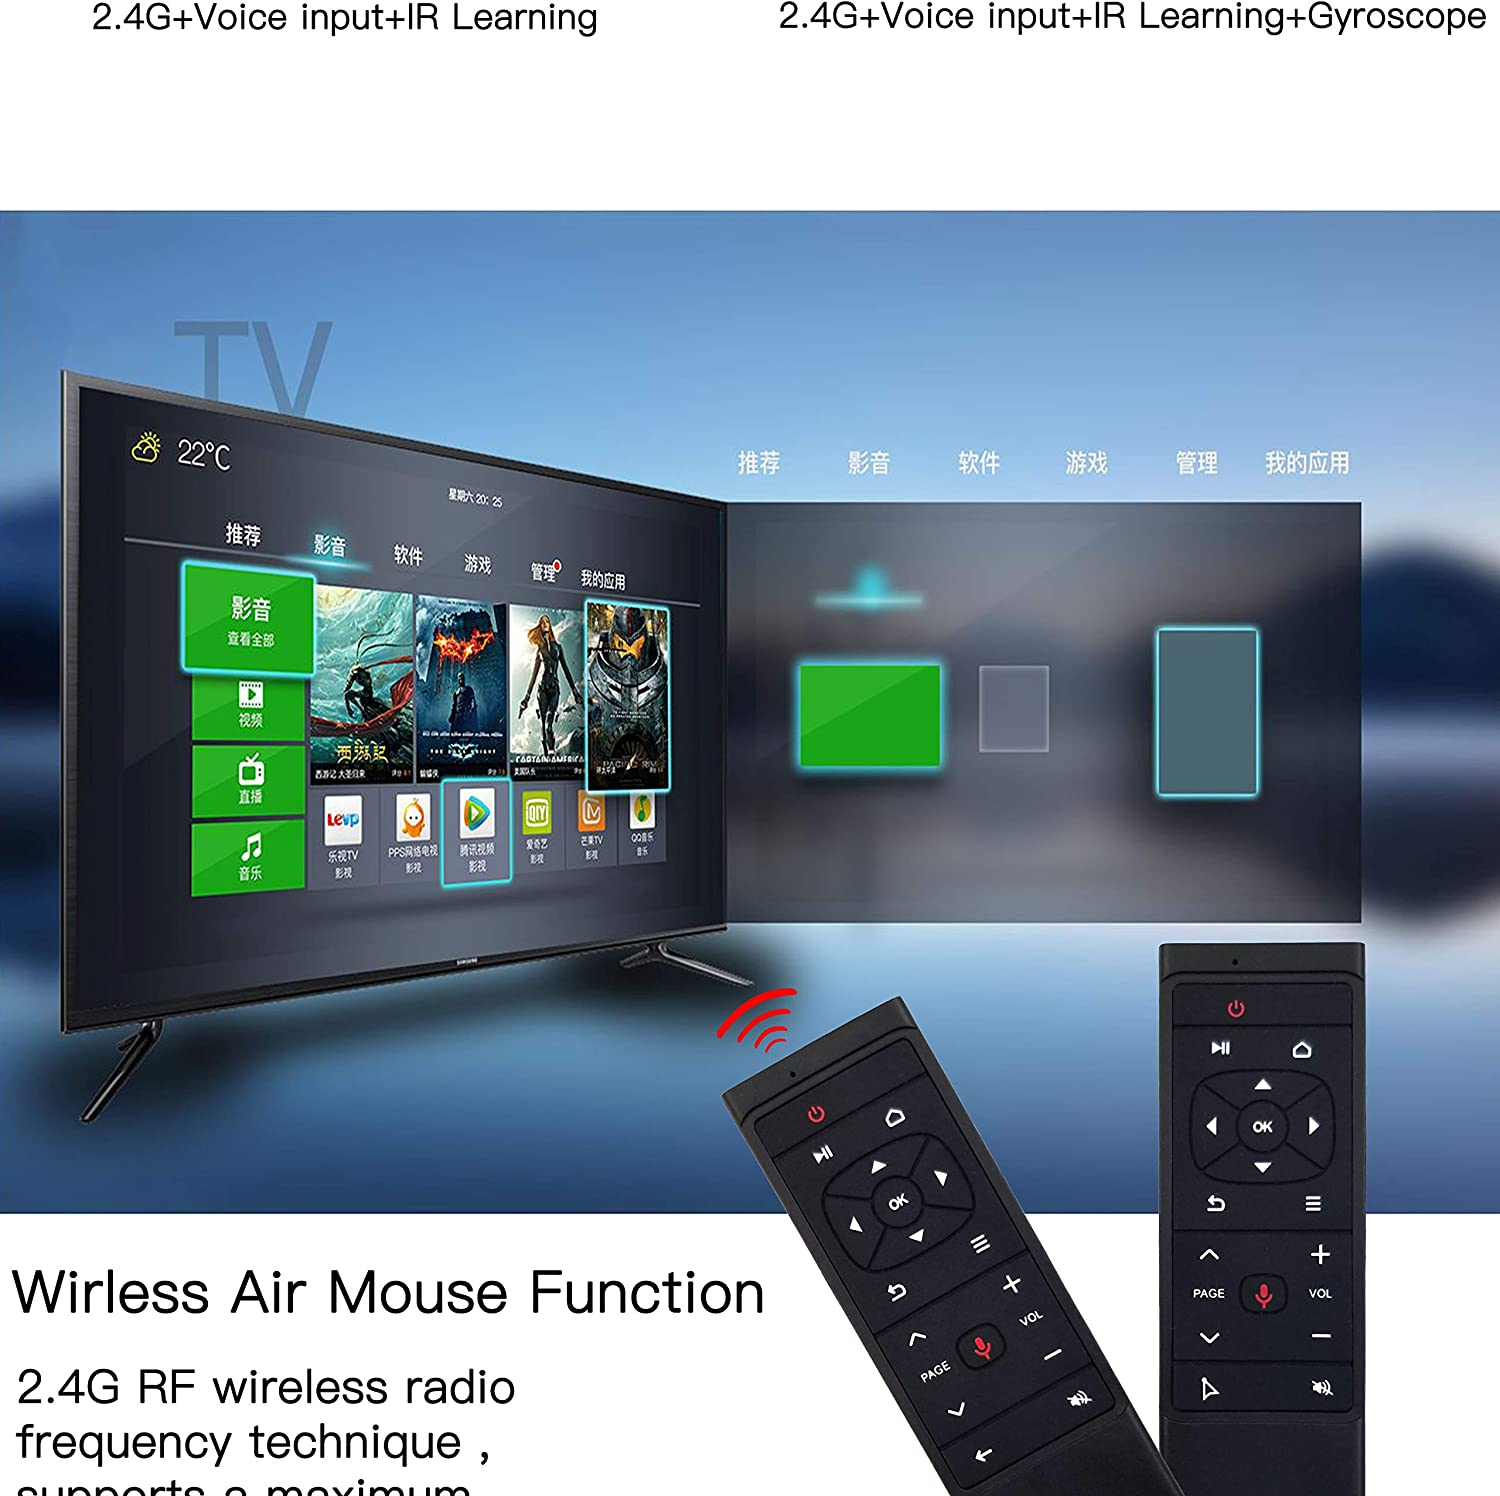 Color: With Gryo Calvas MT12 Voice Remote Control 2.4G Wireless Air Mouse Gryo IR Learning Function Mini Keyboard For Android TV Box PC Projector